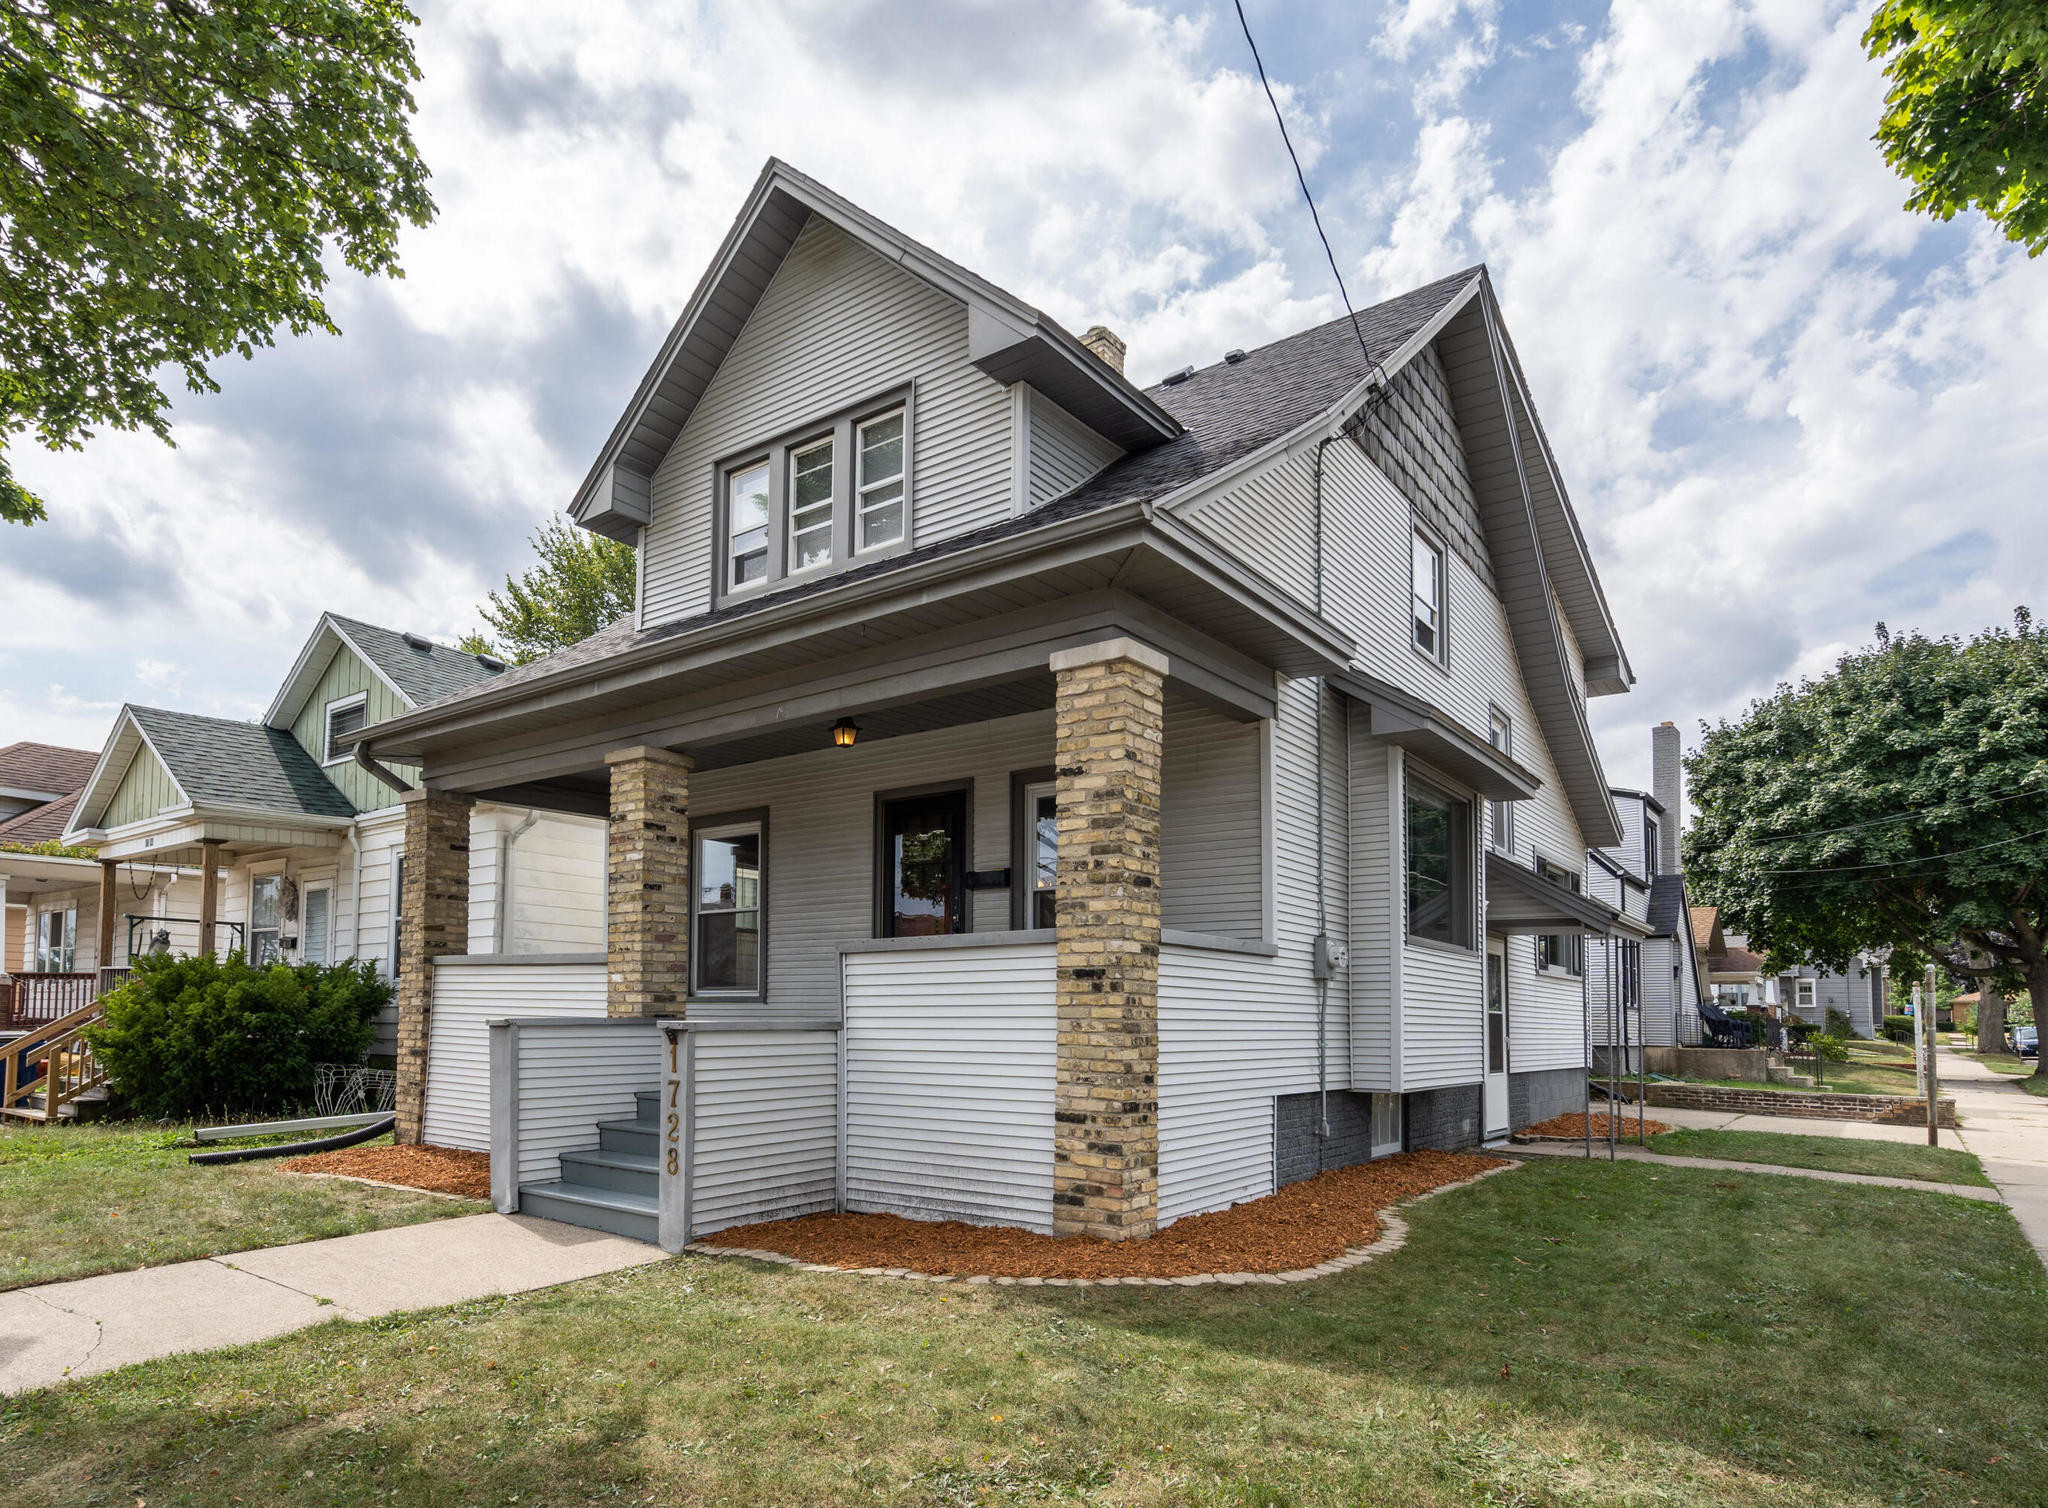 3-Bedroom House In The 19Th Ward